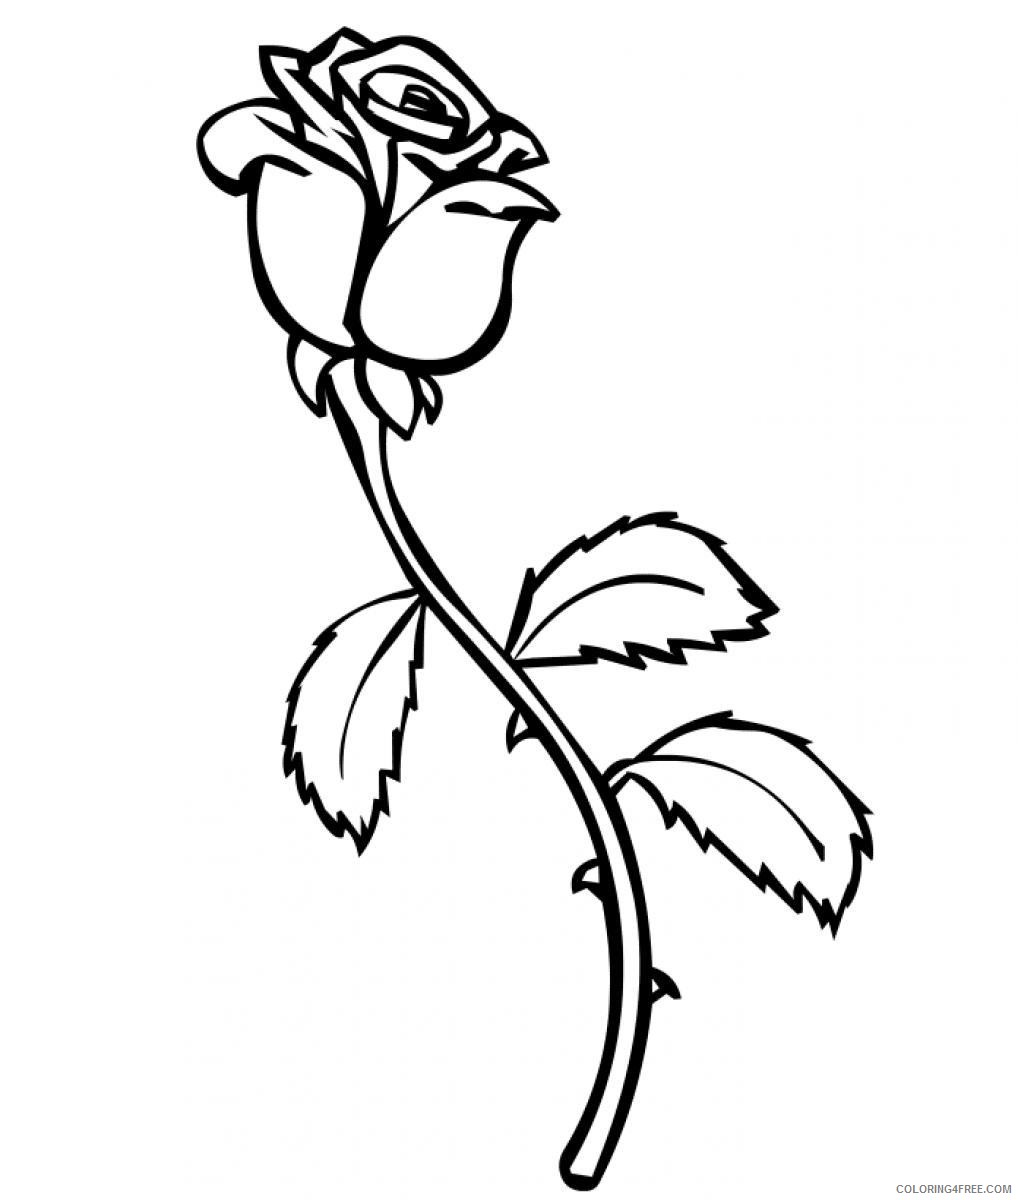 rose coloring pages printable Coloring4free